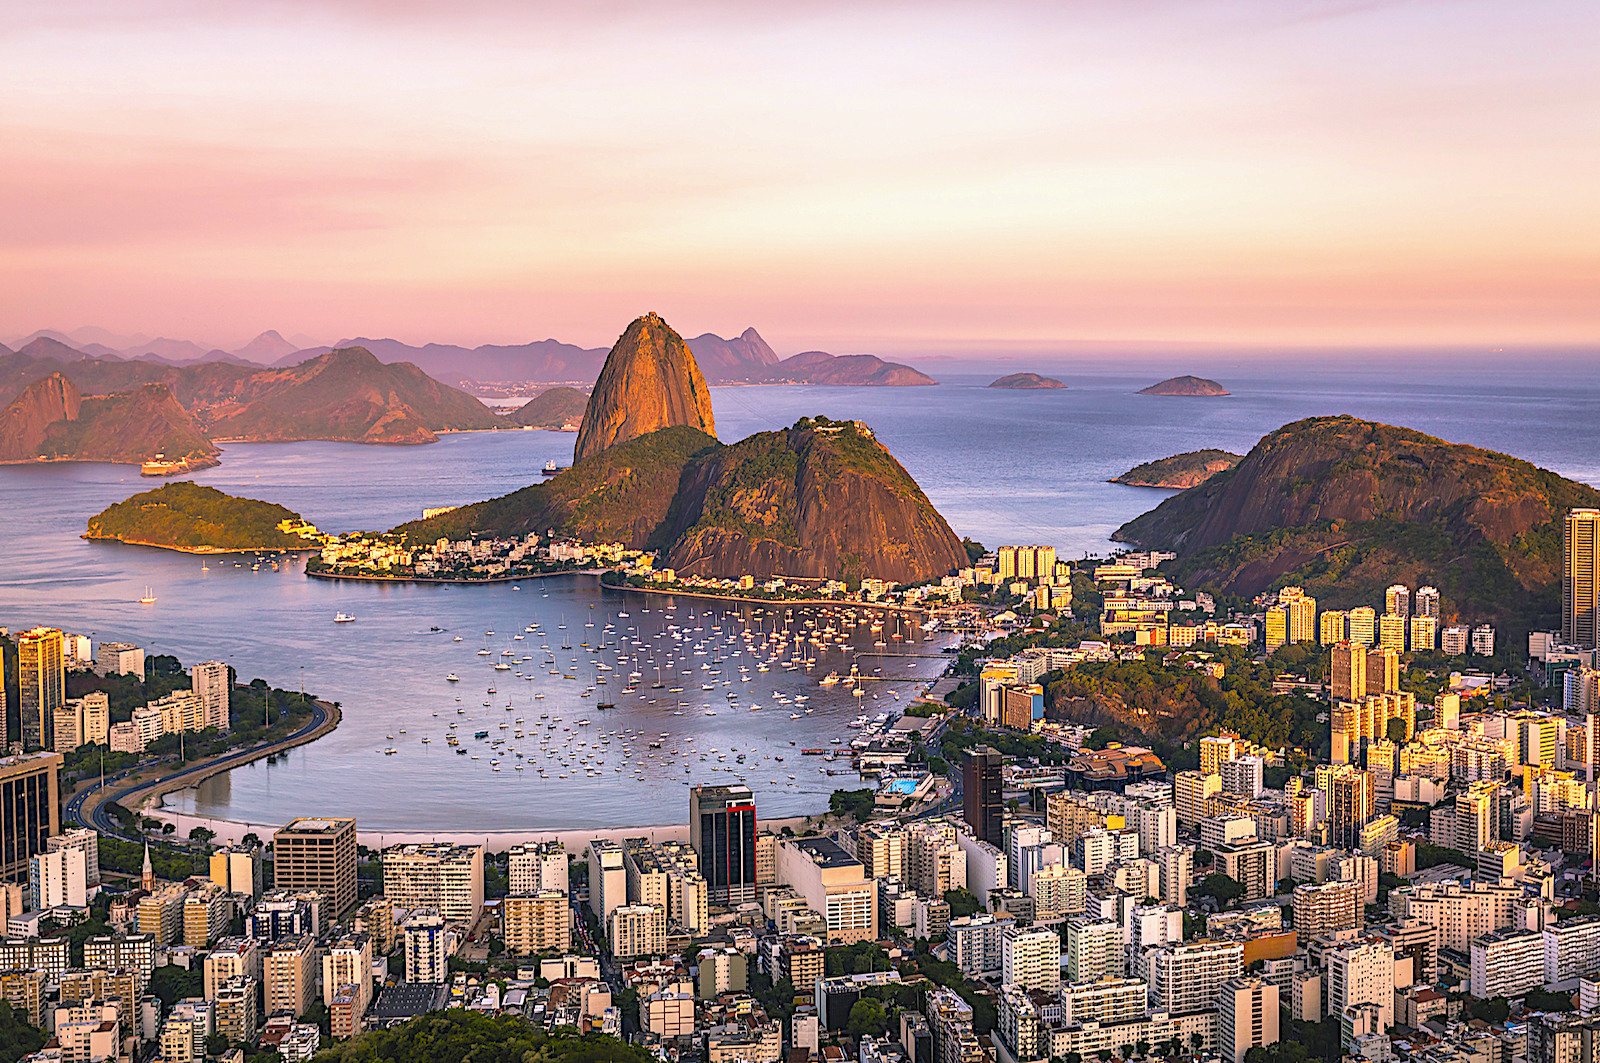 Sugarloaf Mountain (access via cable car) rises 400 meters over Rio de Janeiro